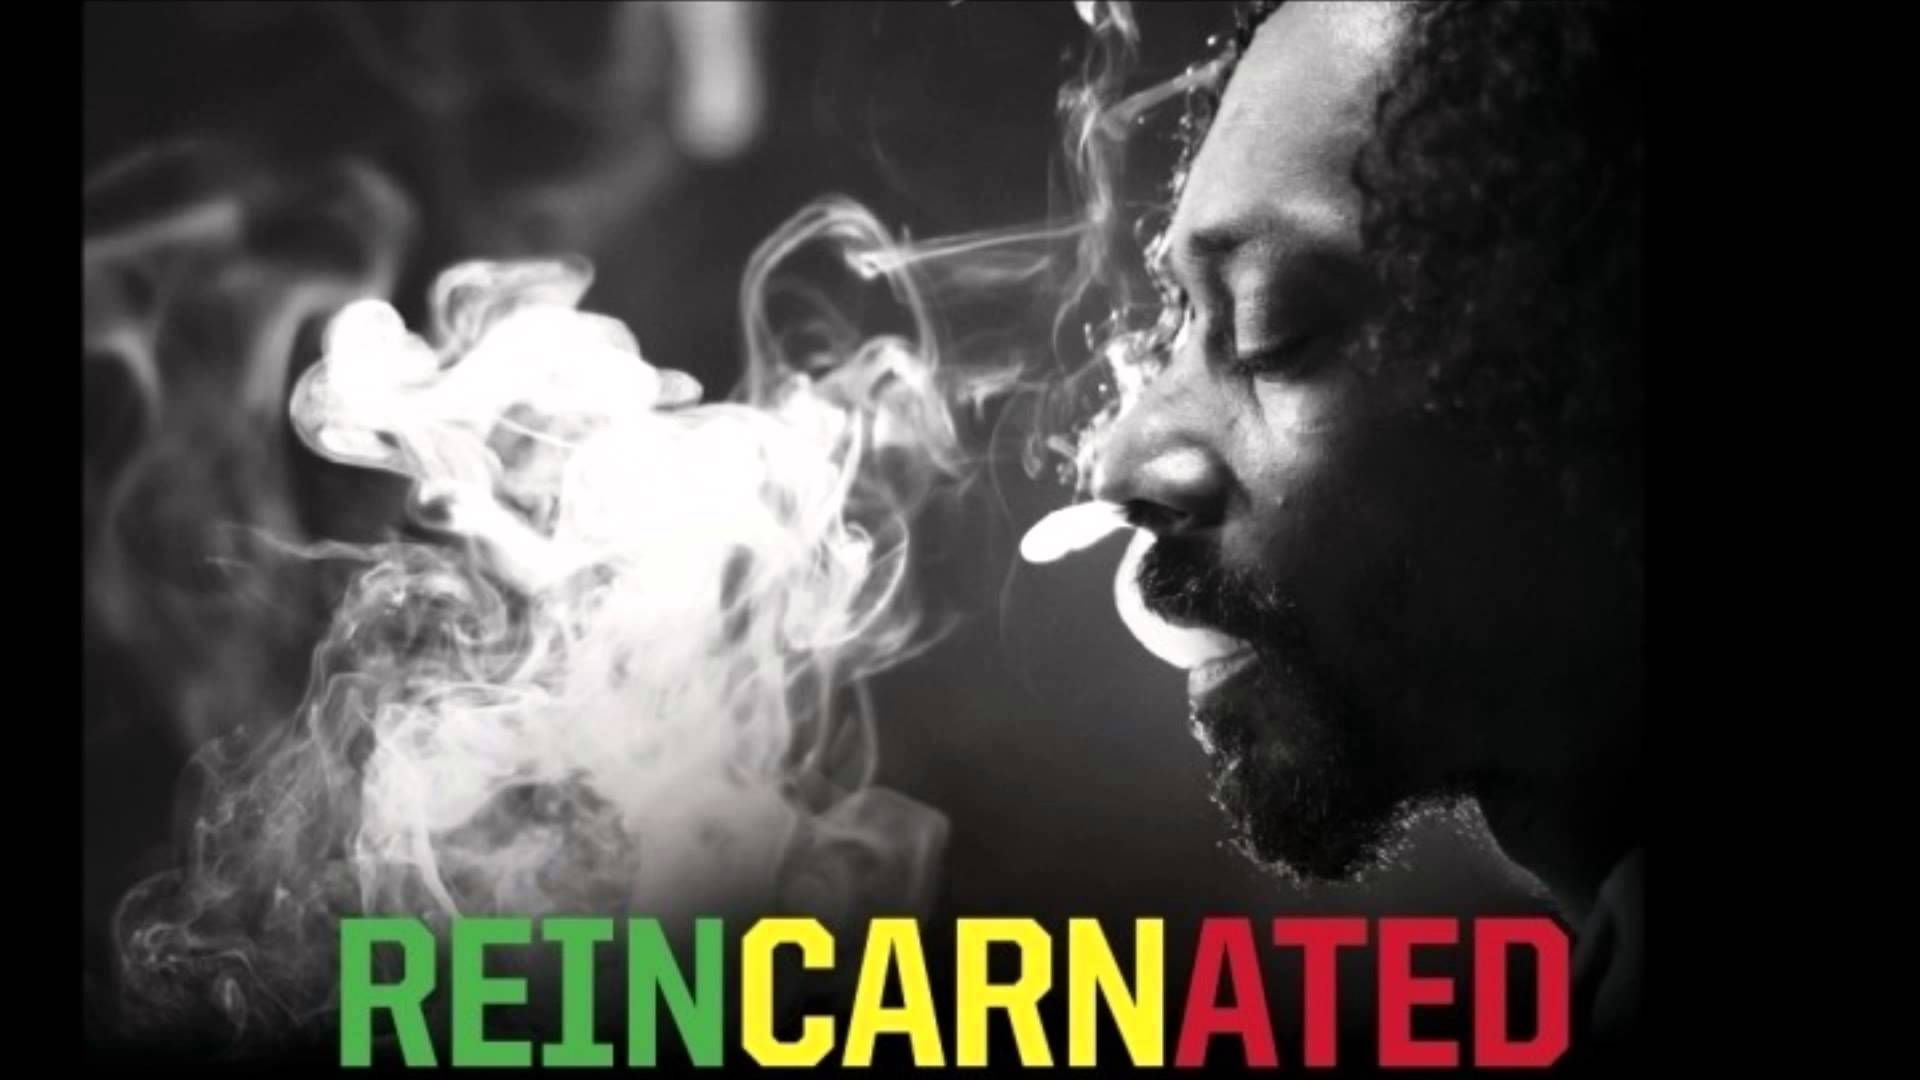 Image For Snoop Lion Smoke The Weed Wallpaper Desktop HD 1920x1080 Backgrounds